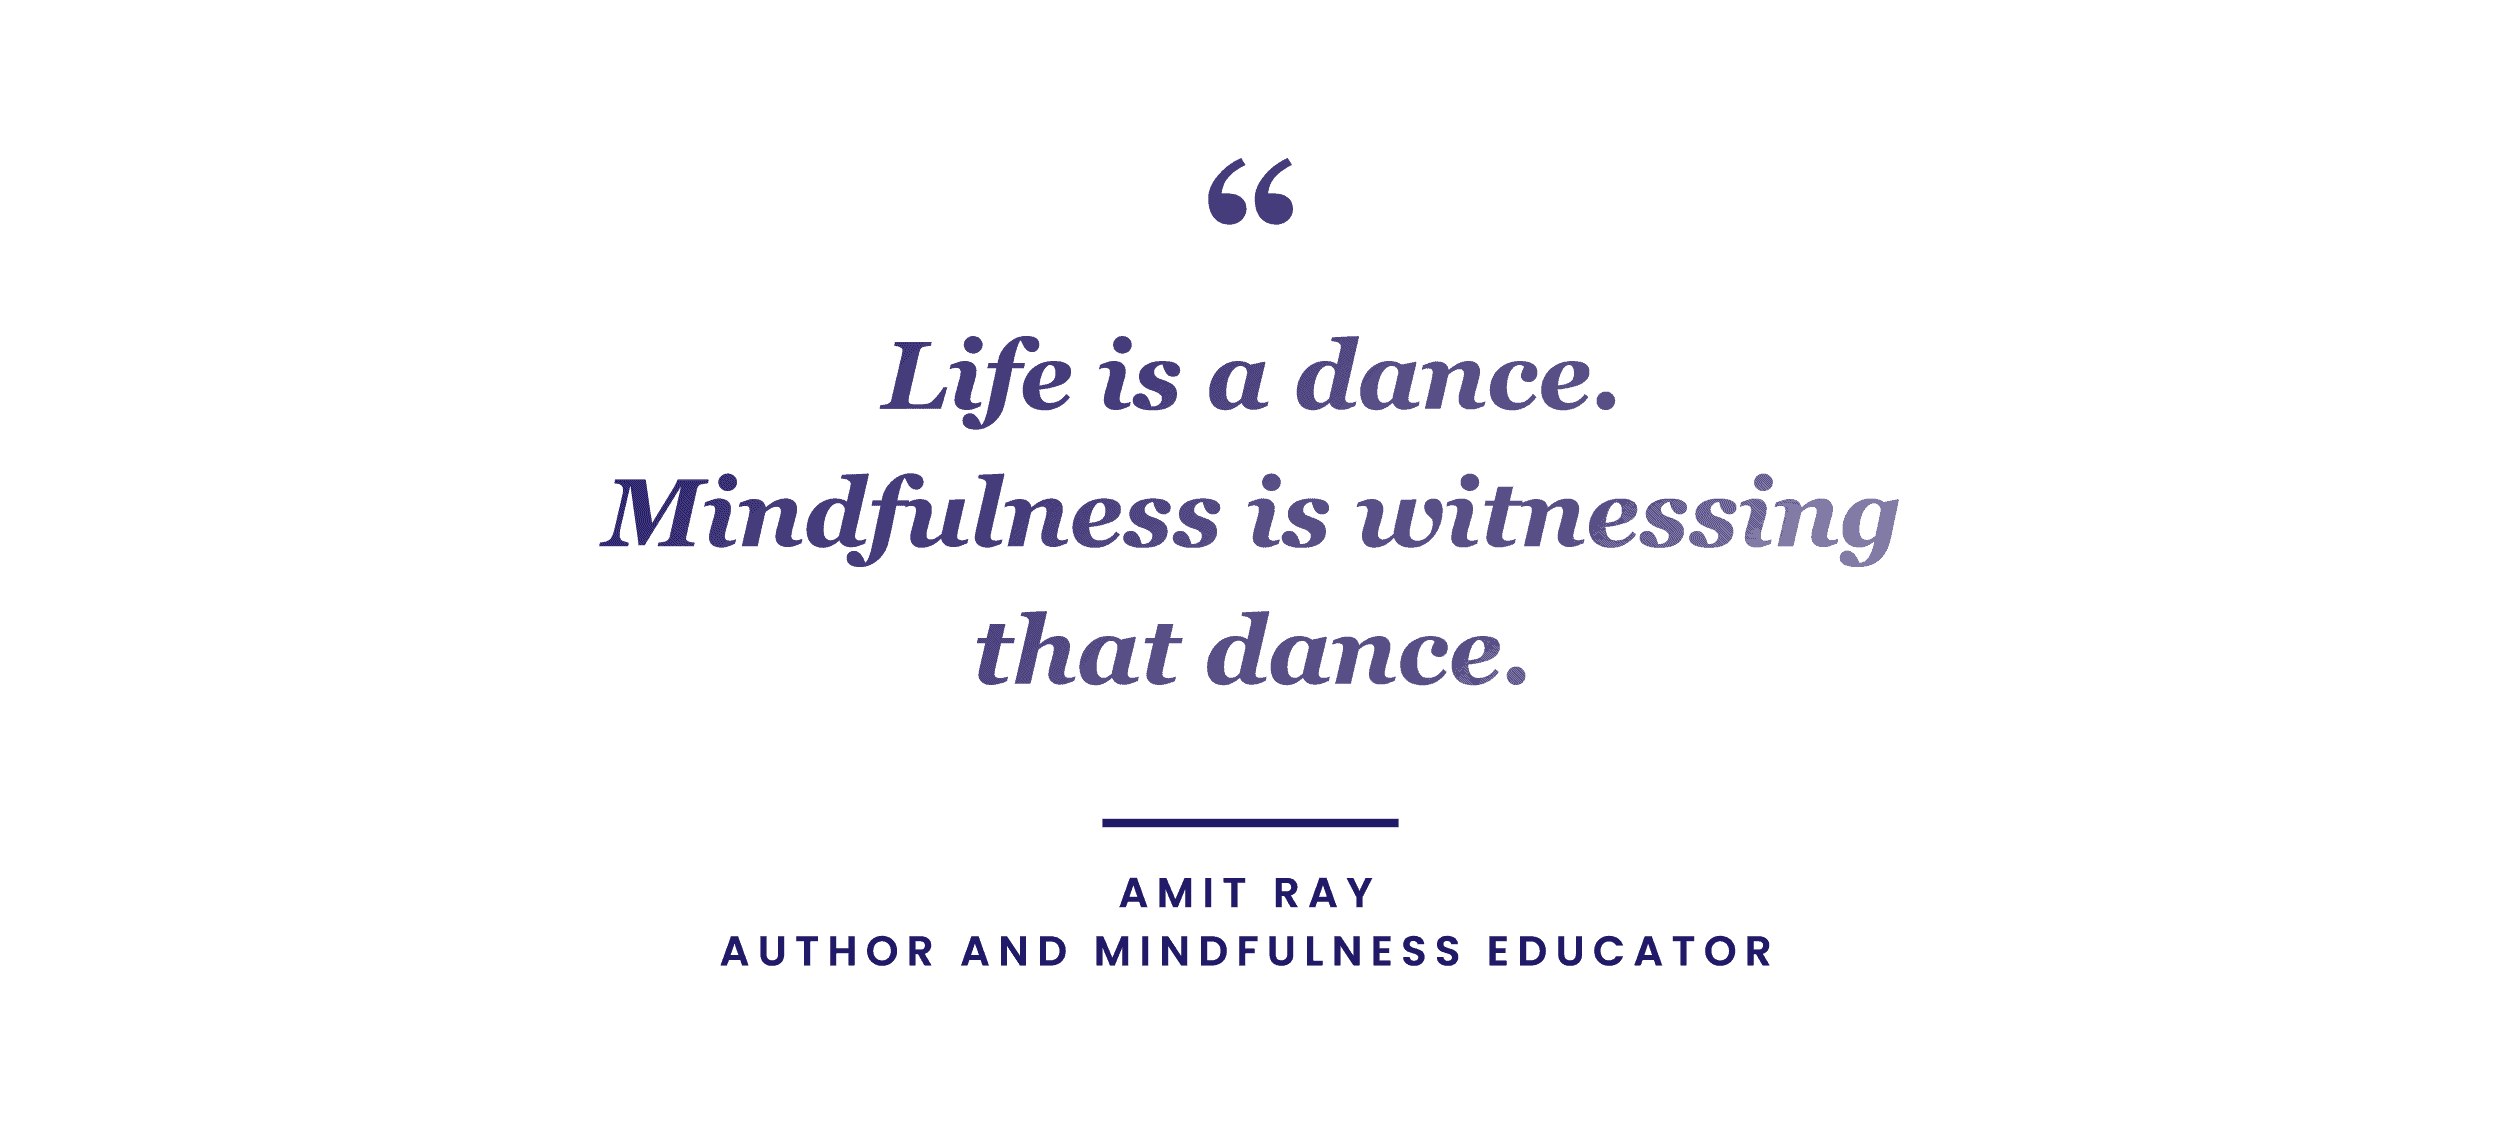 mindfulness quote by Amit Ray